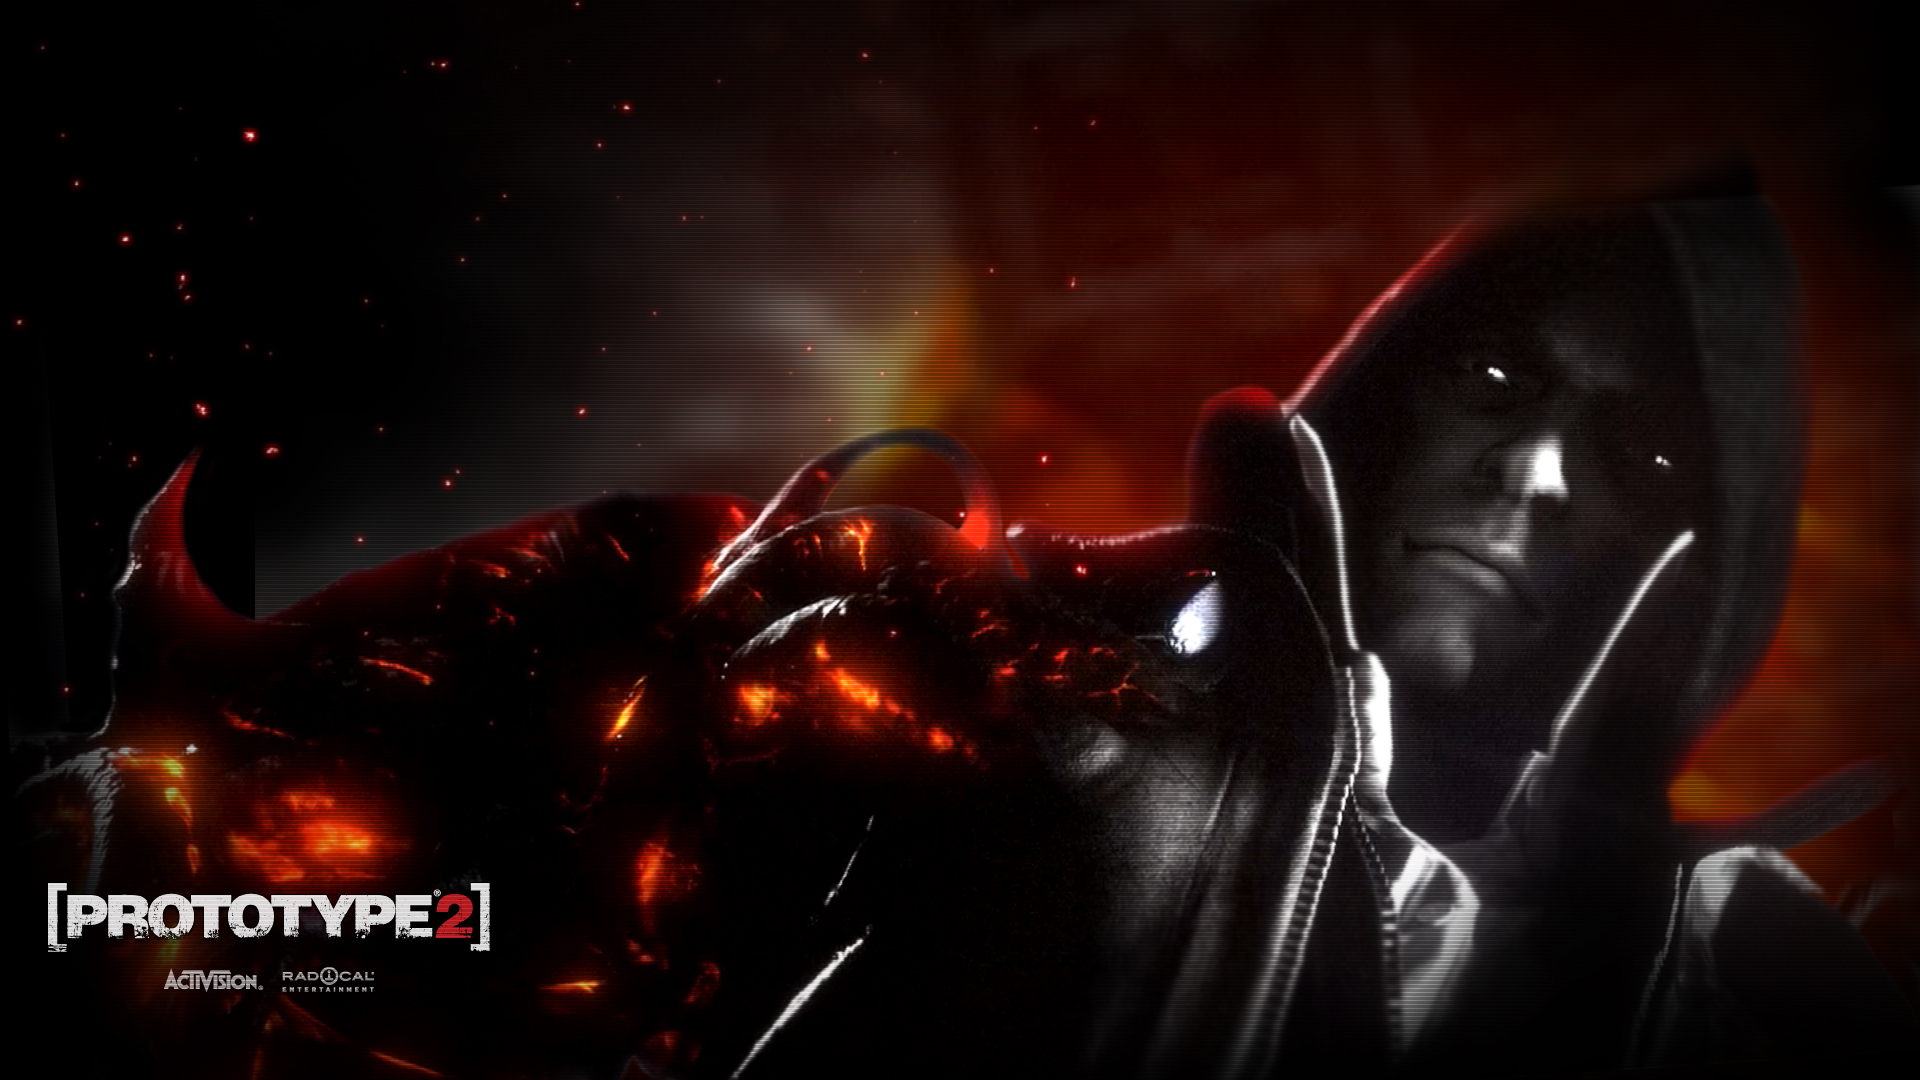 prototype 2 wallpapers, pictures, images